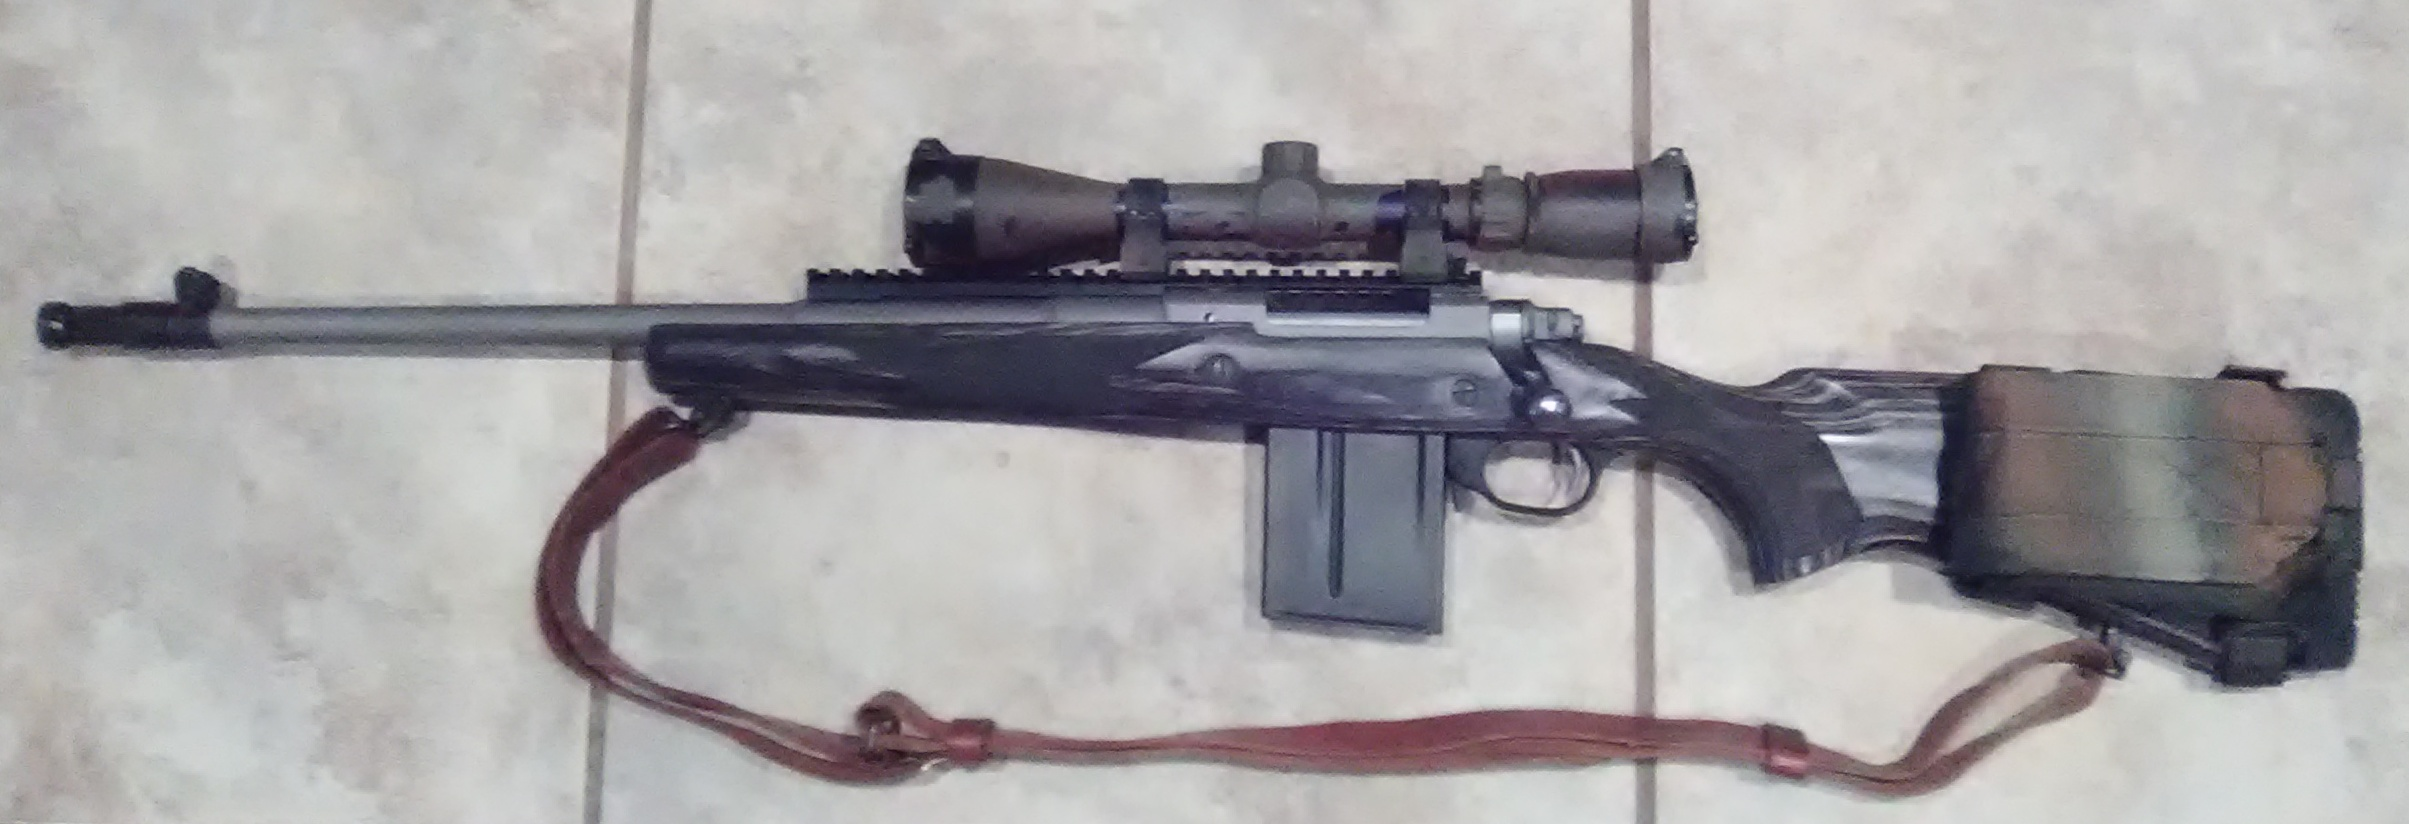 The Jed Eckert rifle 10